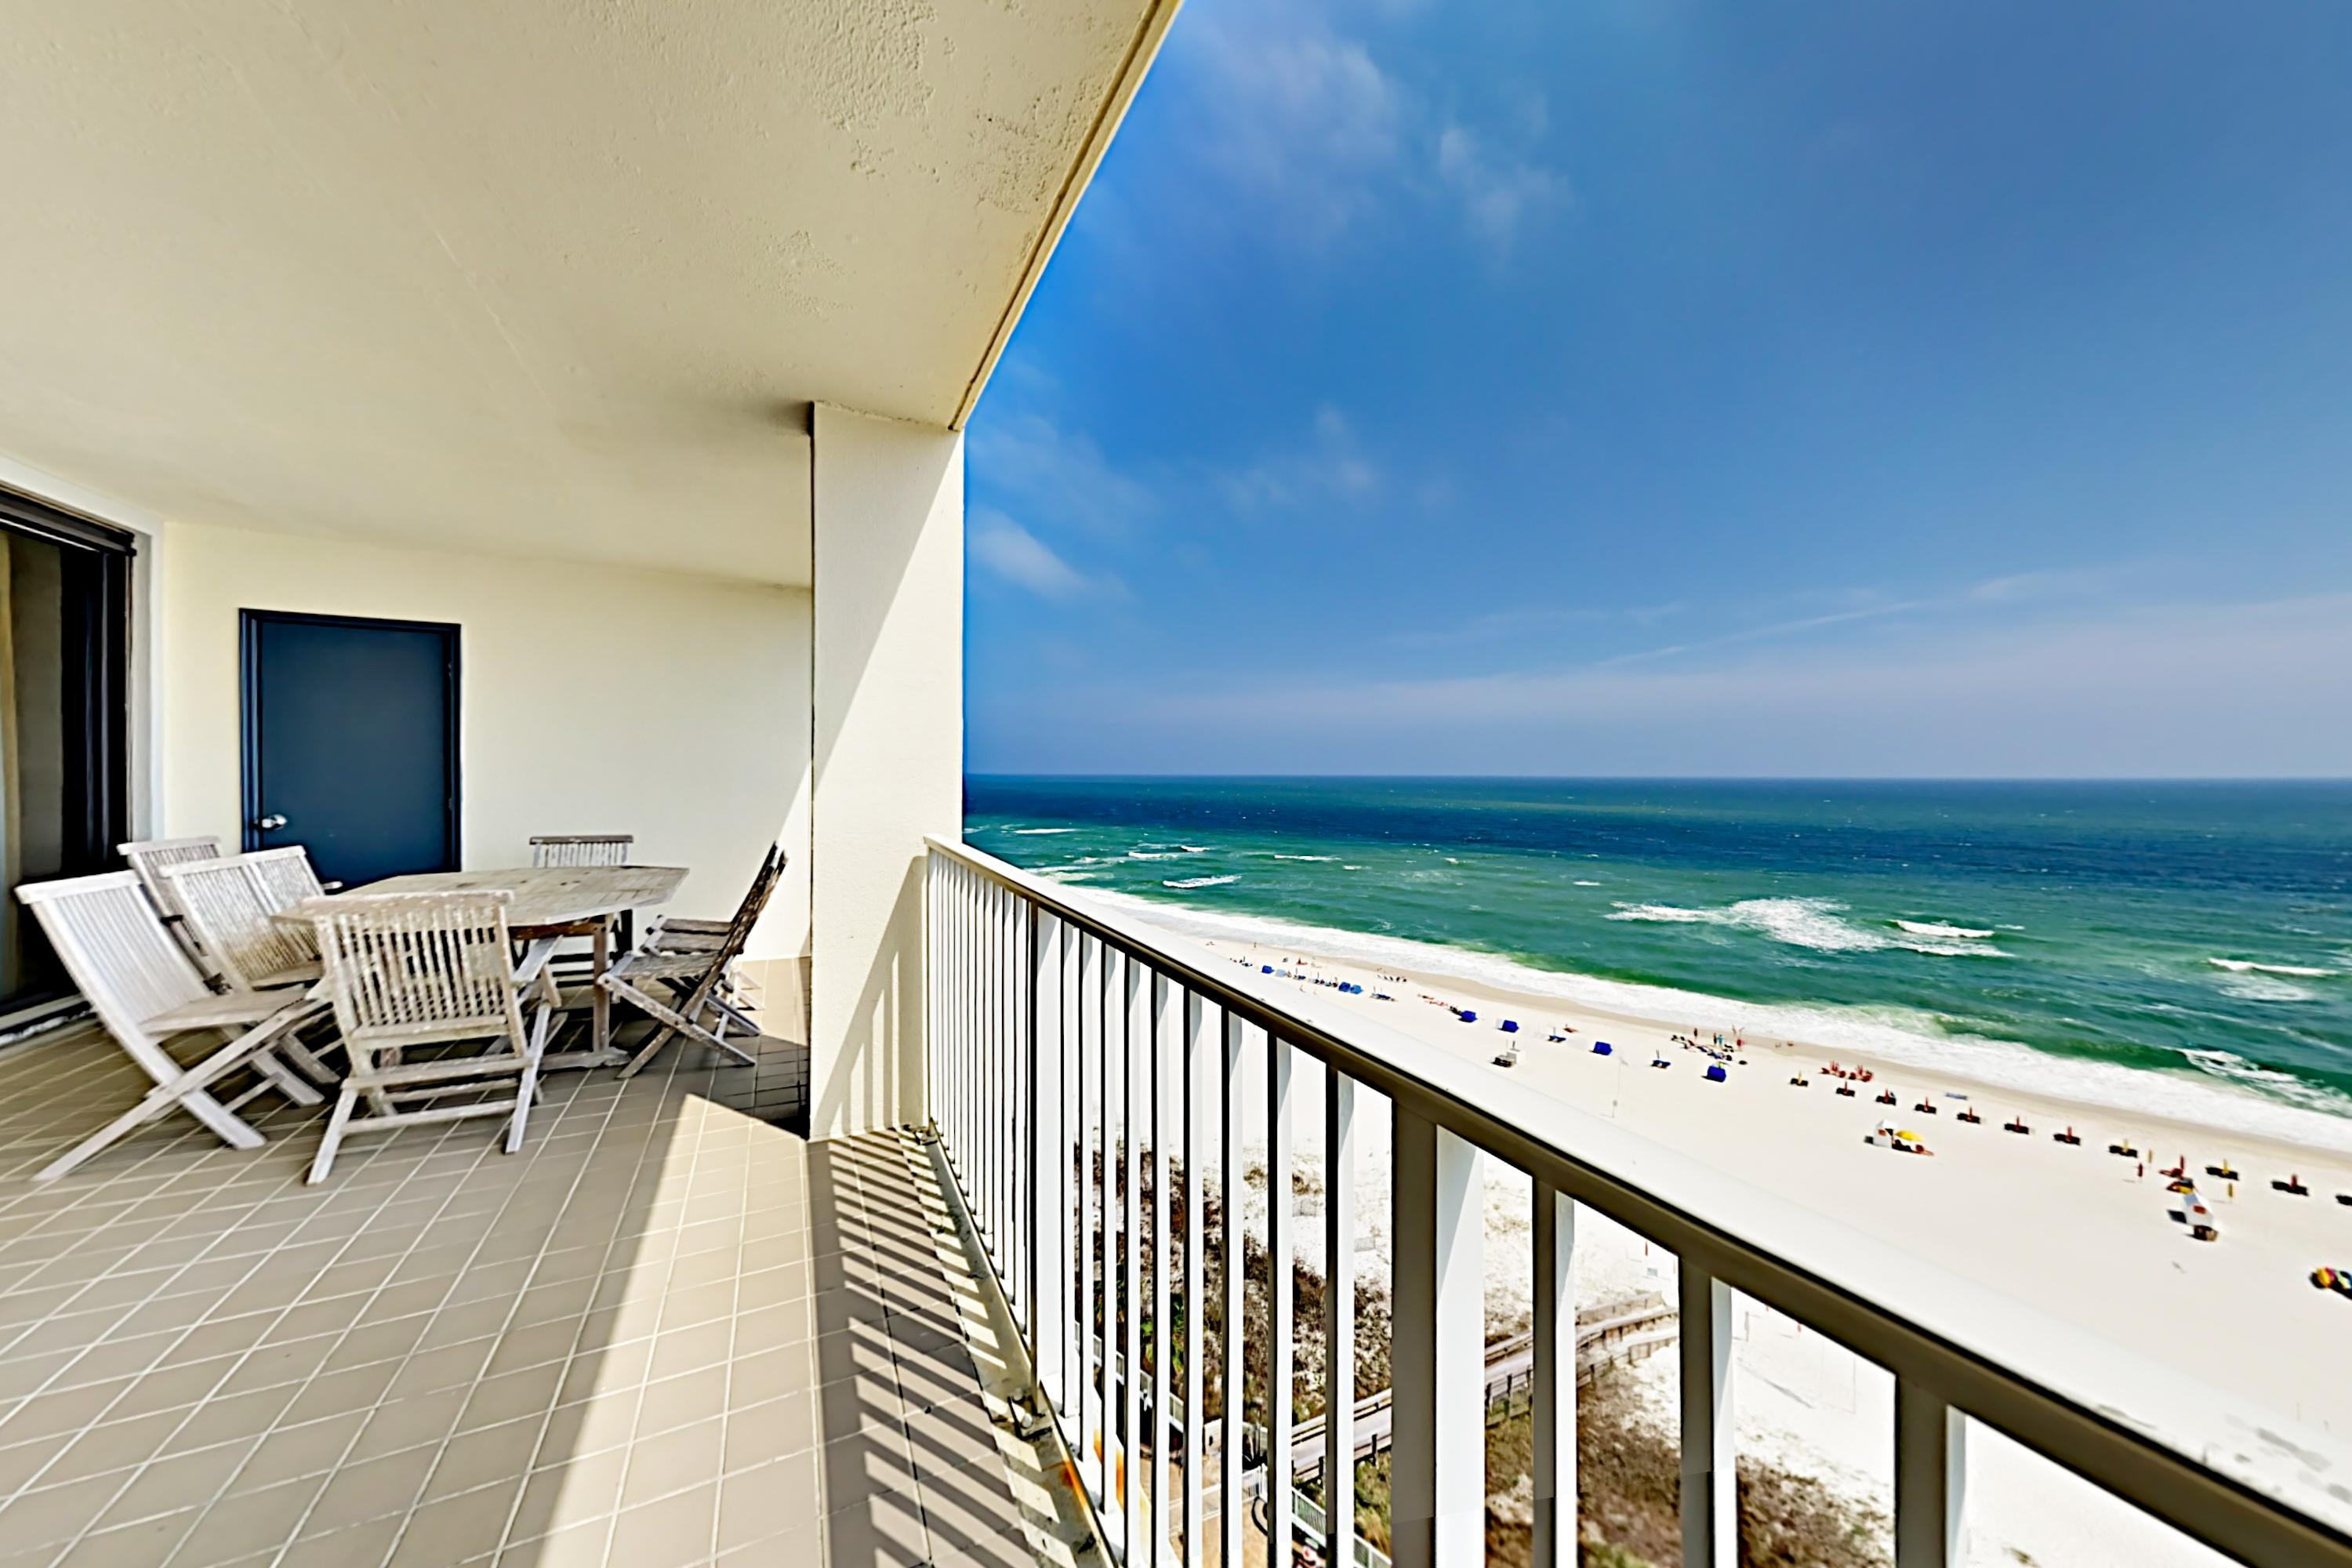 Property Image 1 - Beachfront Corner Condo, with Wraparound Balcony & Pool Access